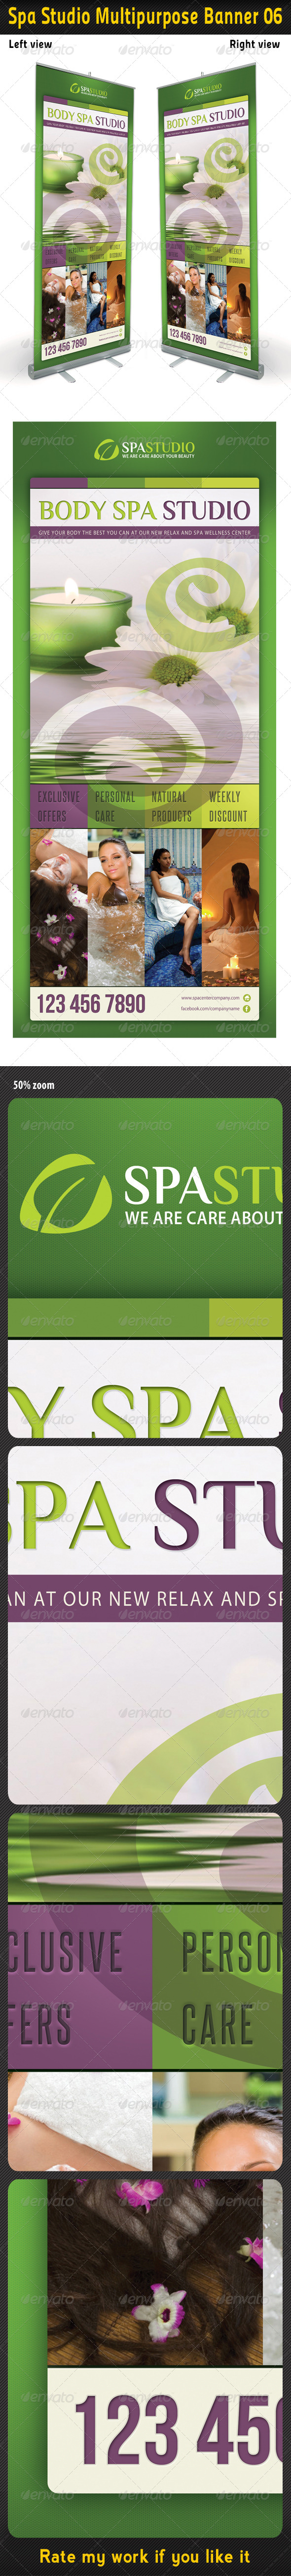 Spa Studio Multipurpose Banner 06 - Signage Print Templates